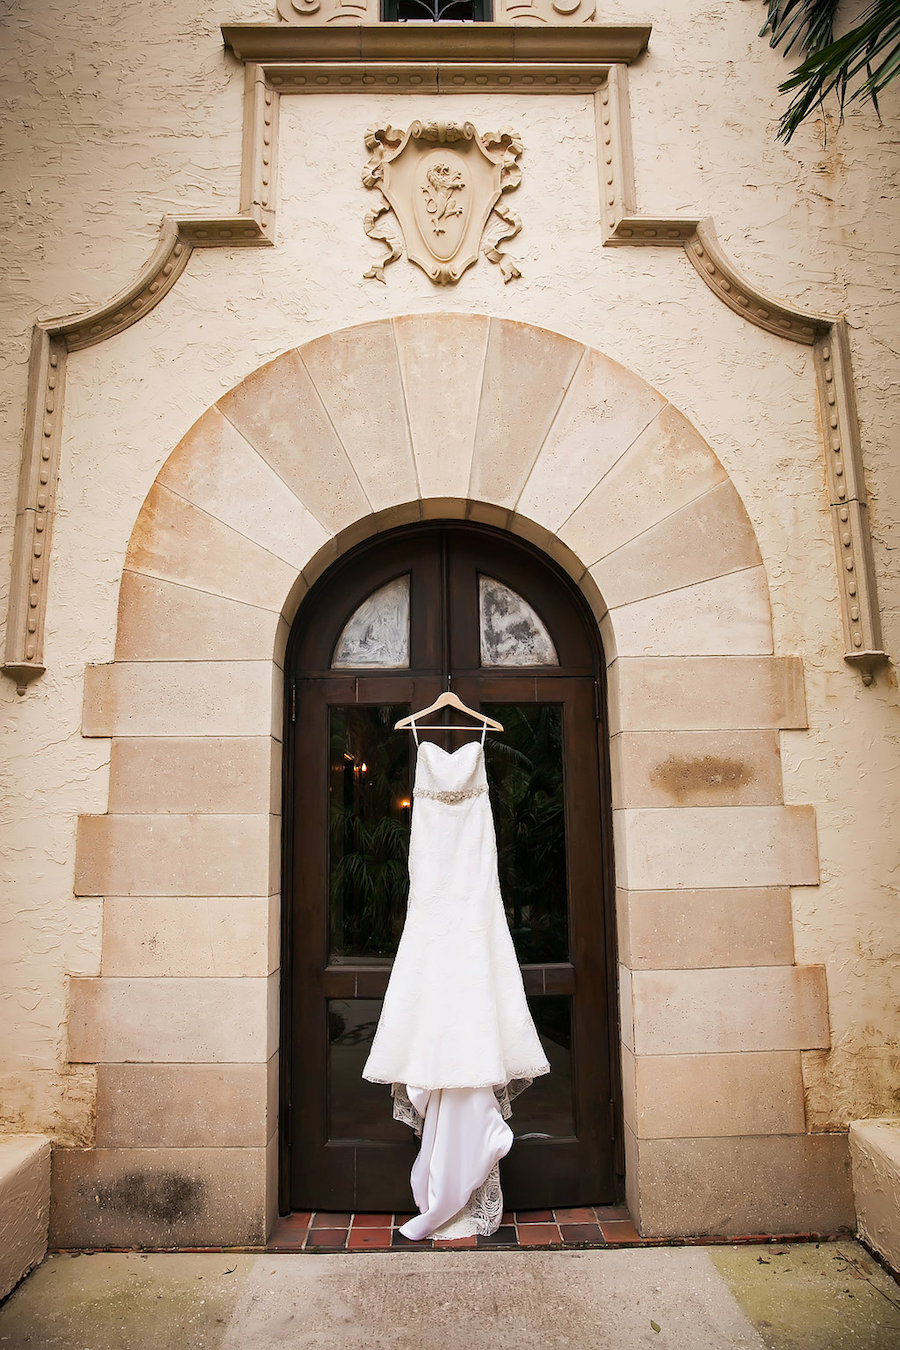 Ivory Anna Maier Strapless Wedding Gown with Beaded Sash at Powel Crosley Estate   Tampa Bay Photographer Limelight Photography